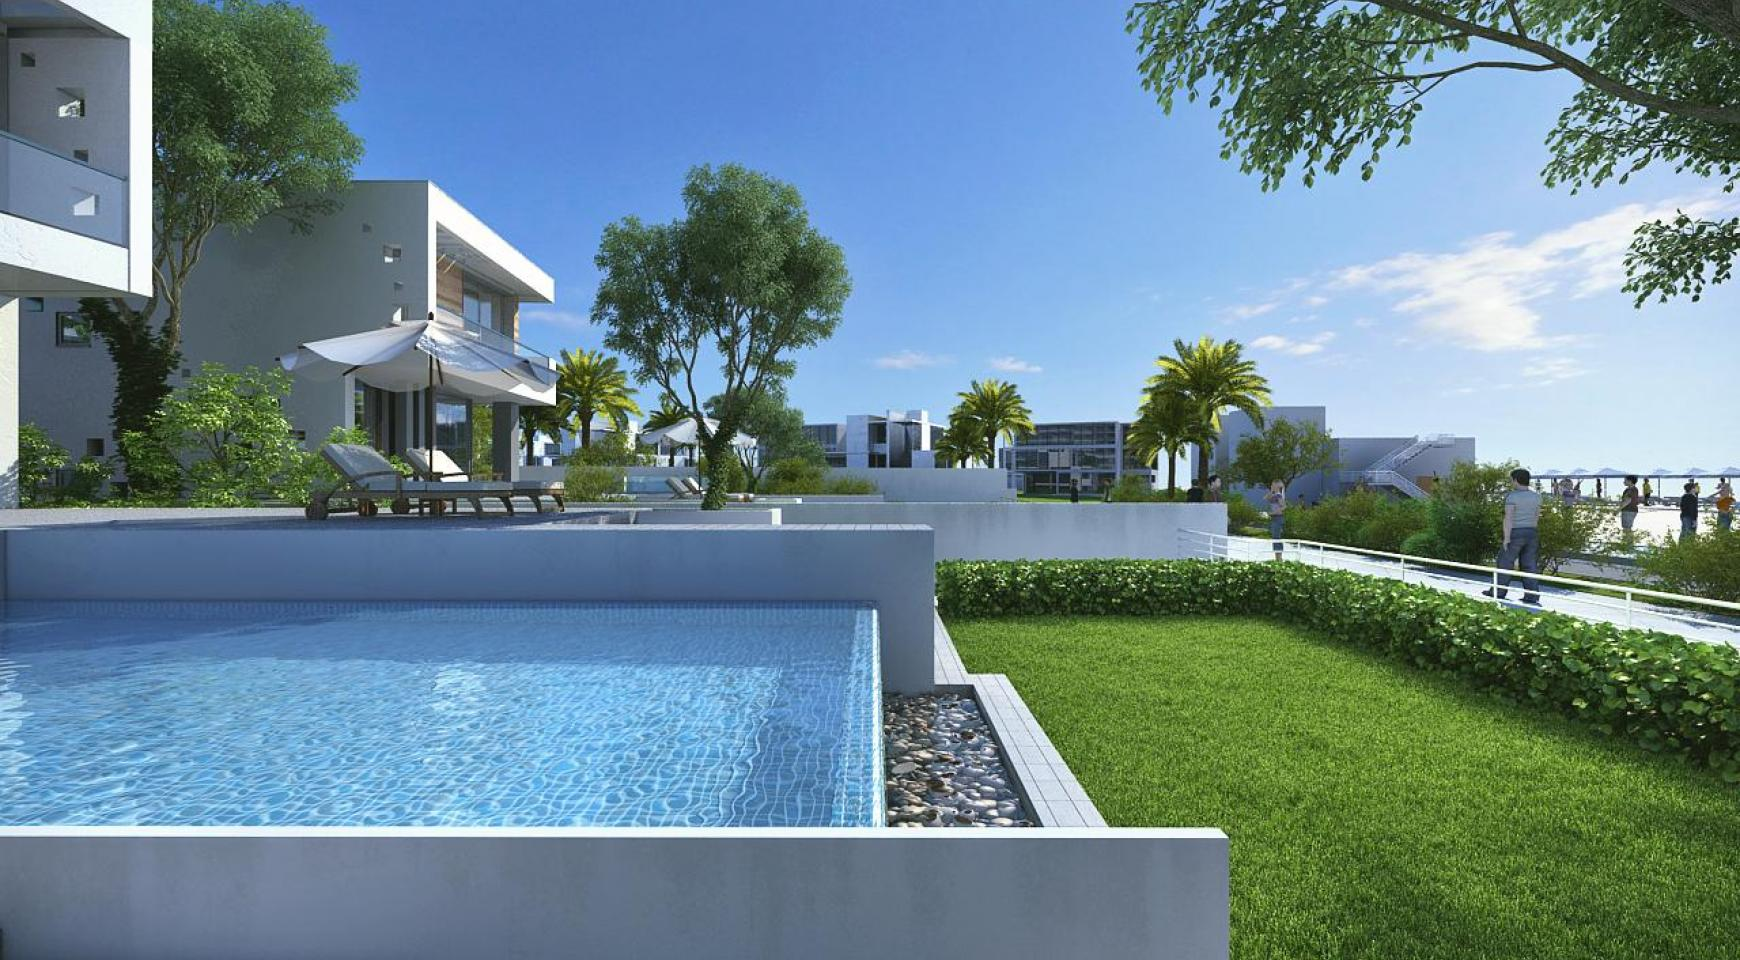 4 Bedroom Villa in a New Project by the Sea - 8